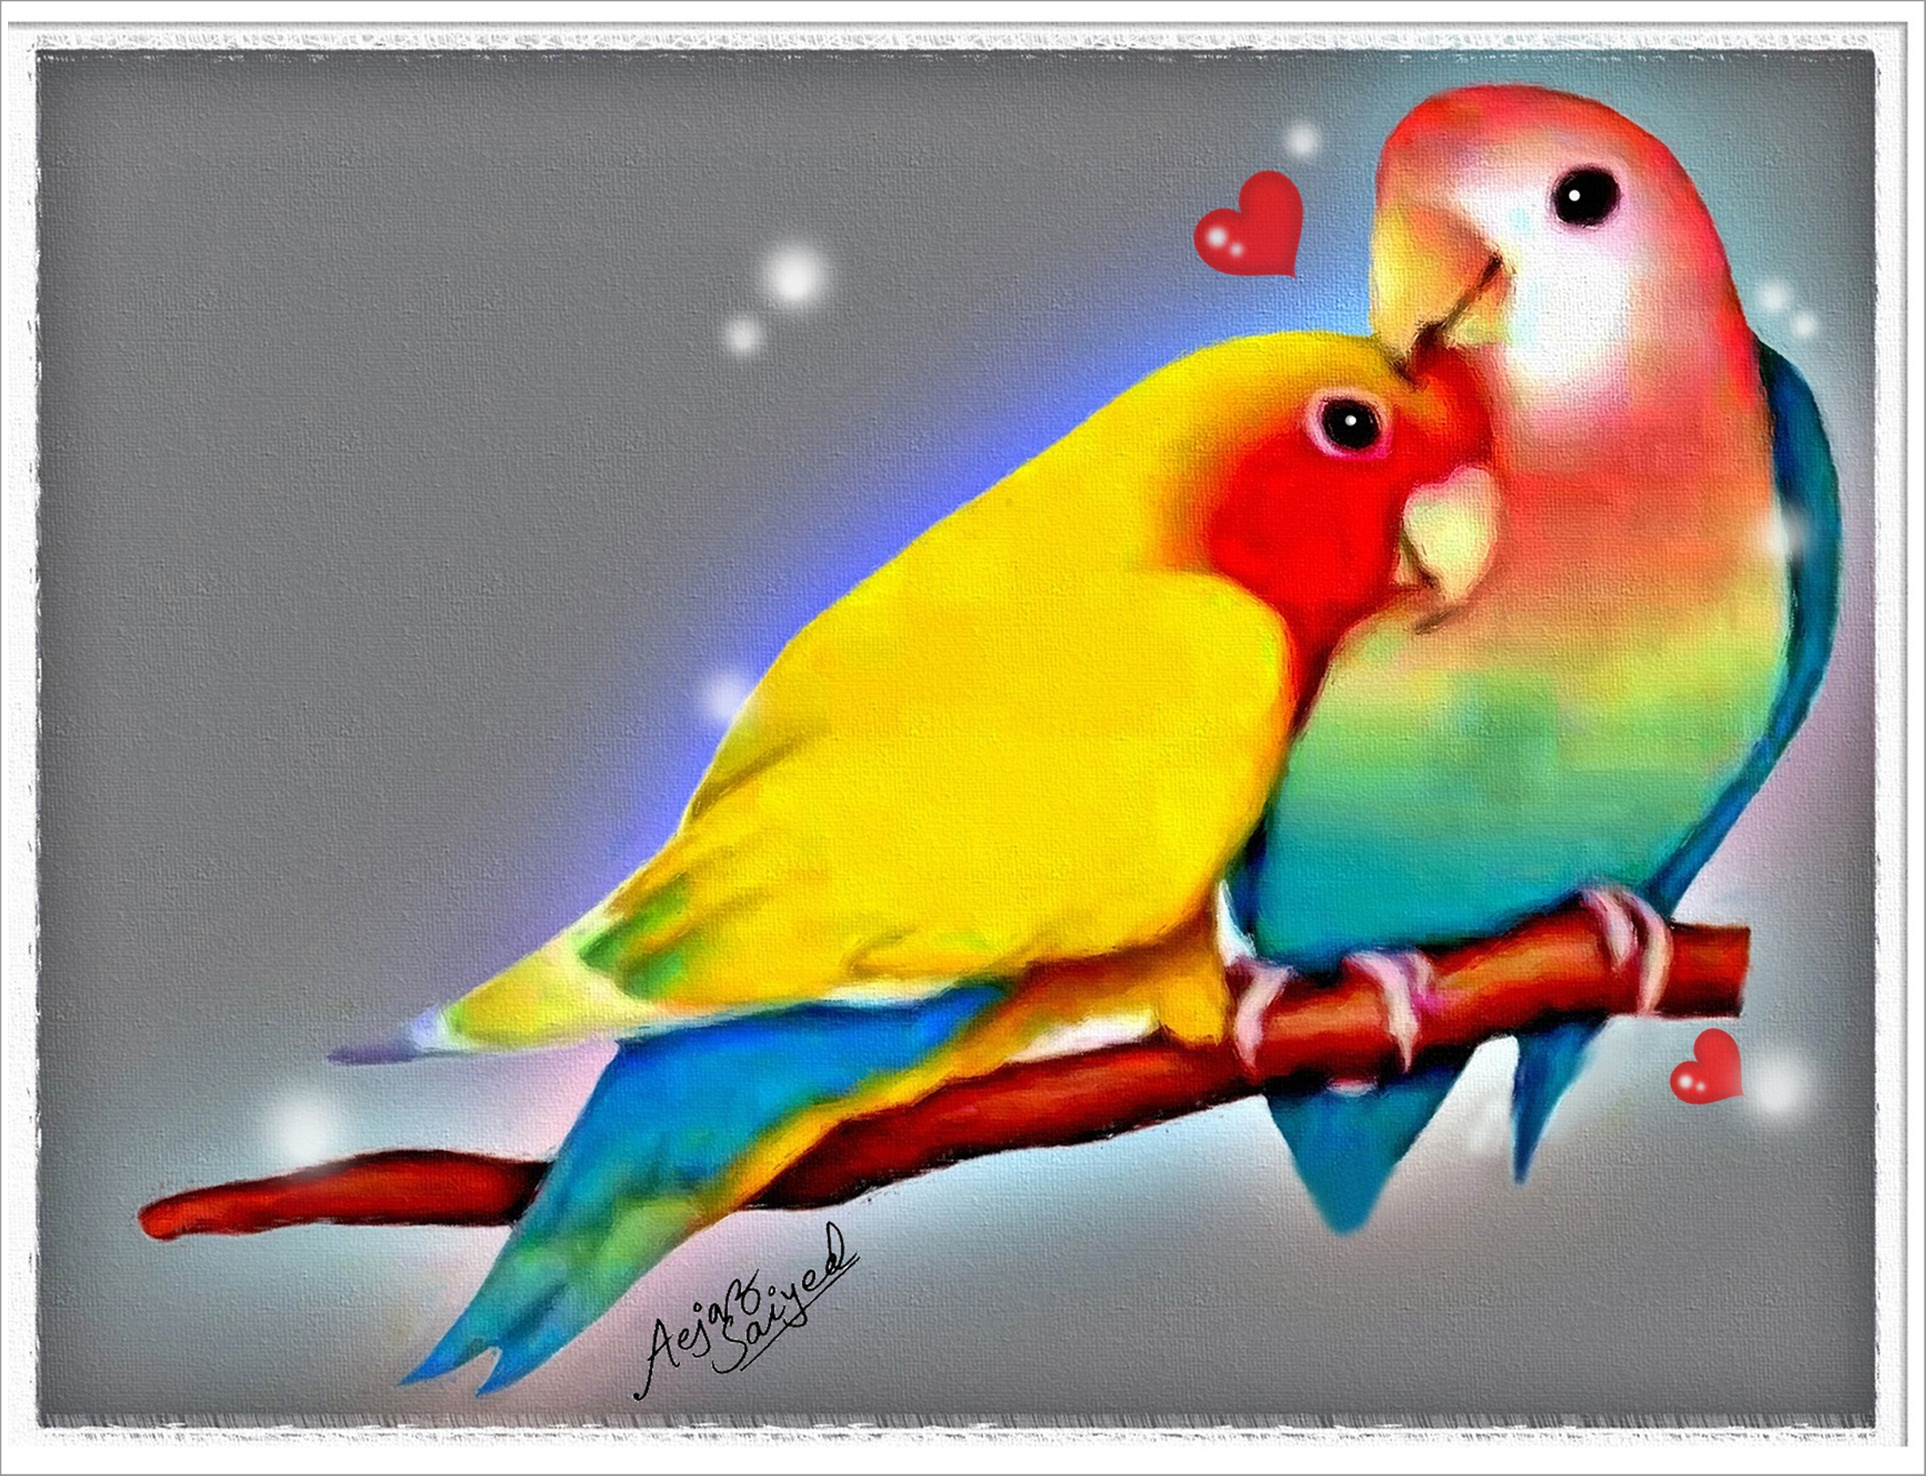 Free Download Images Of Love Birds Love Birds Wallpapers In Hq 1926x1476 For Your Desktop Mobile Tablet Explore 73 Wallpapers Of Love Birds Free Wallpapers And Screensavers Birds Free